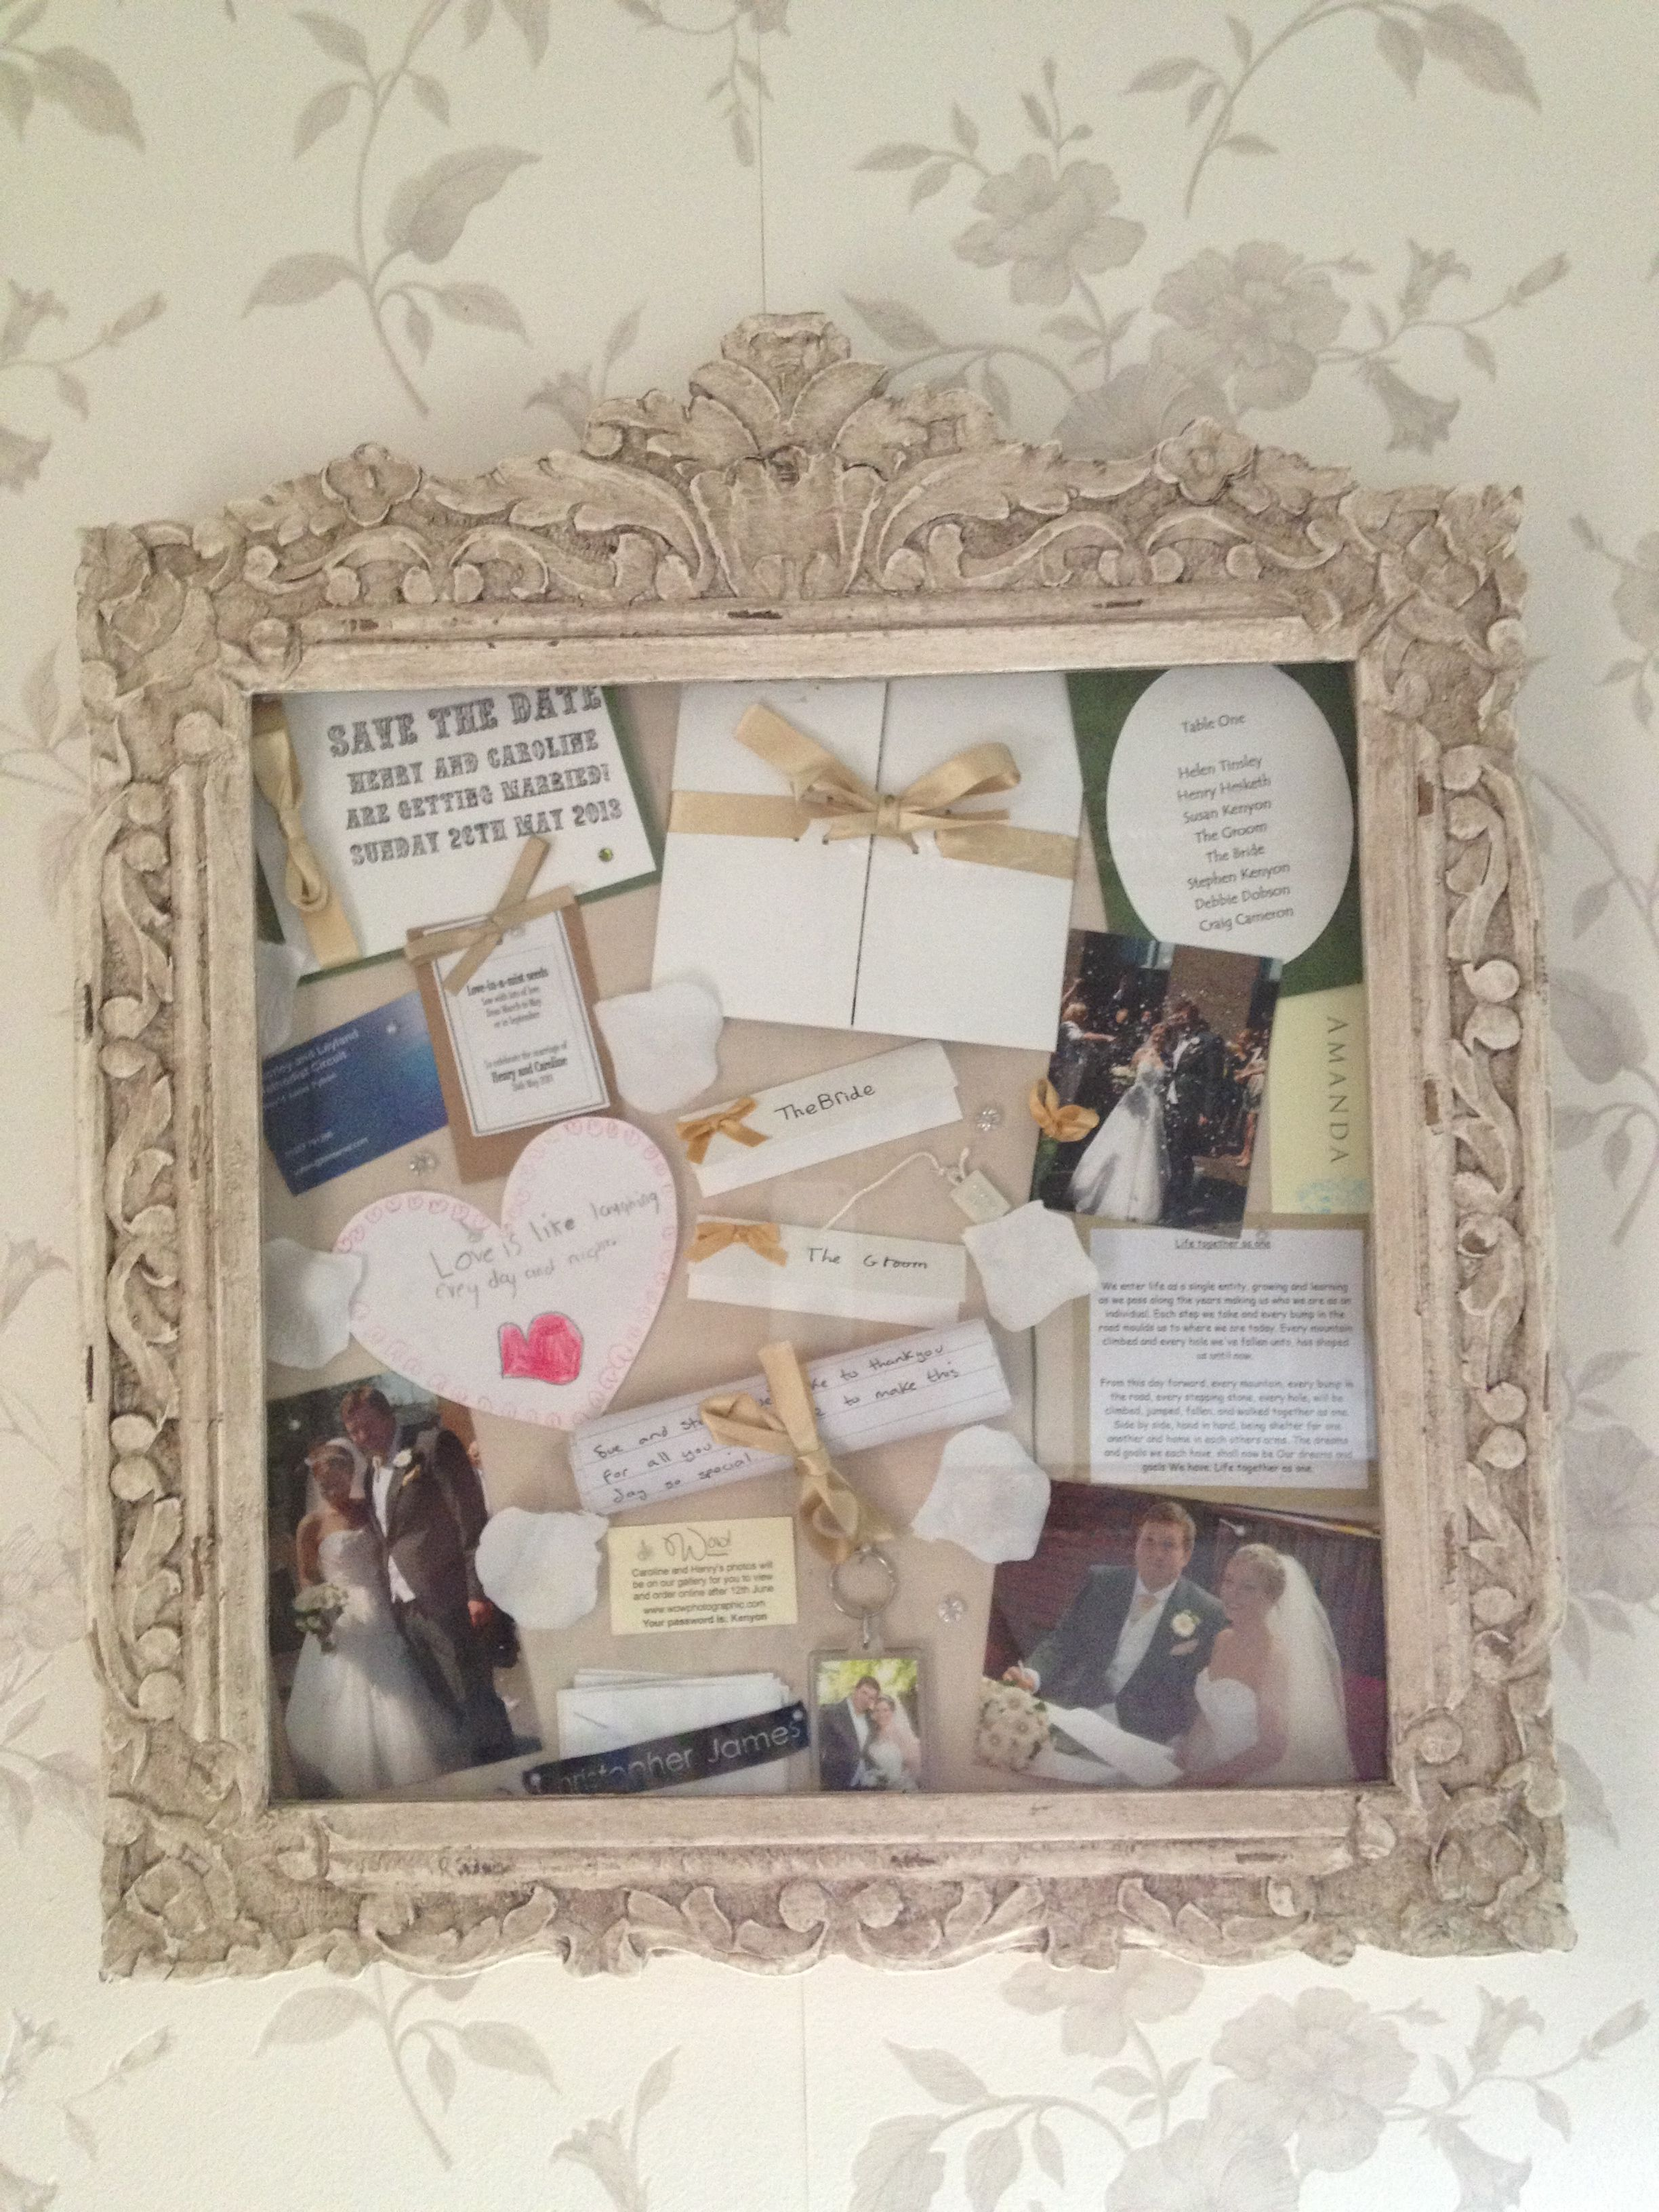 Box frame with wedding memories invitations dress label tiara